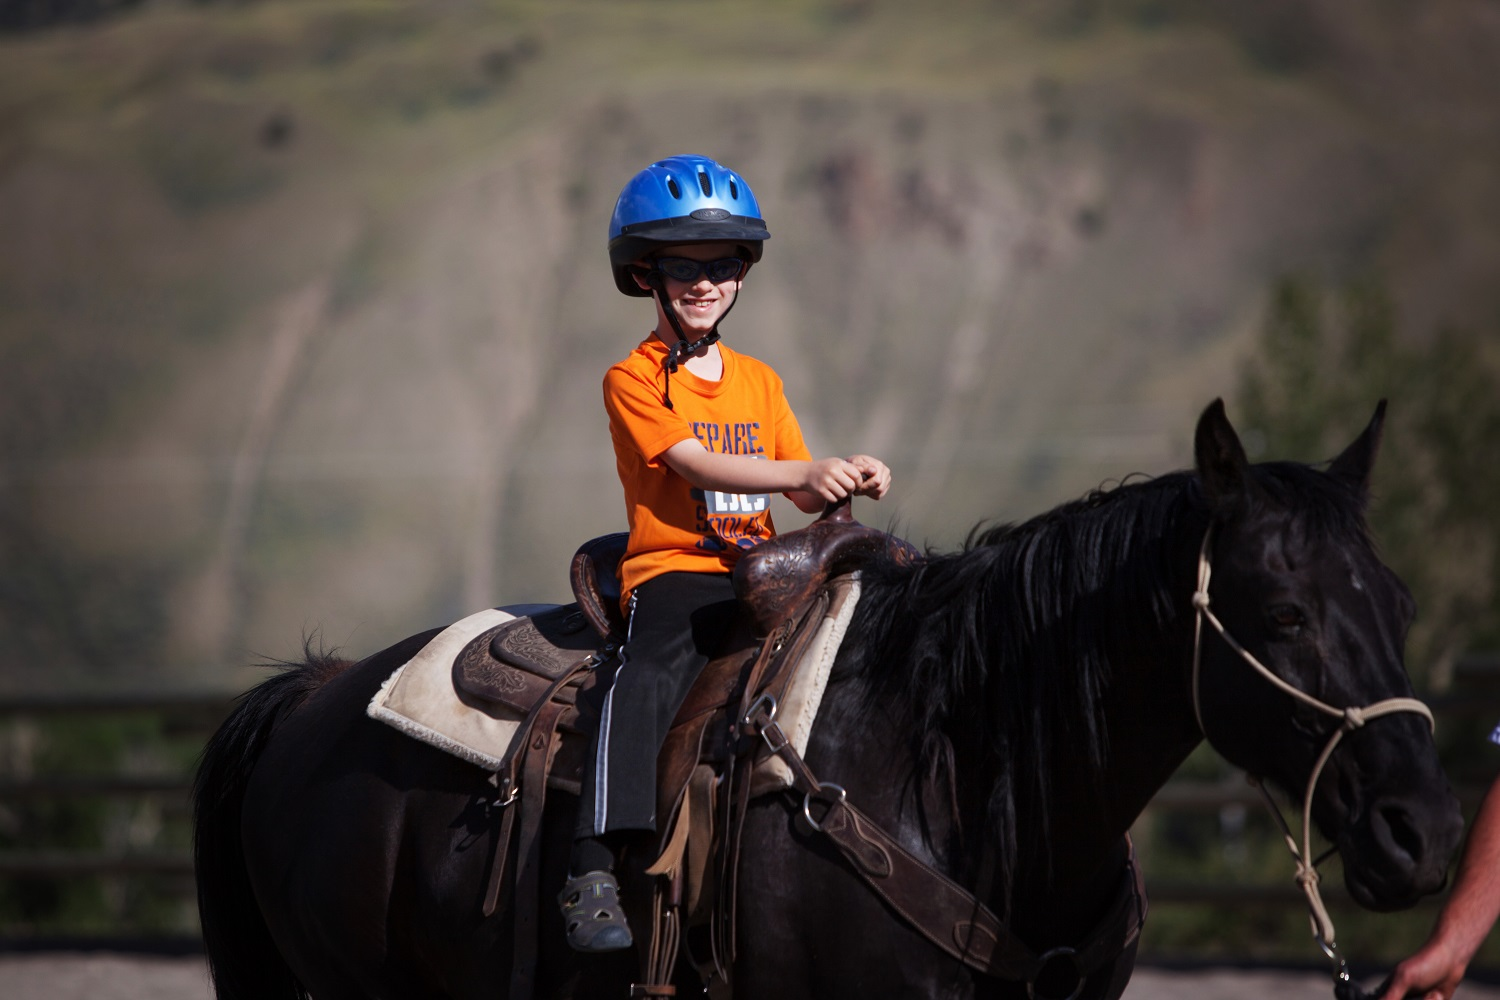 the program - To help ensure a comfortable and safe ride, horses are selected to match each rider's ability and experience level. We offer riding lessons in the arena, and 1 hour, 2 hour, and 4 hour rides on the trail.